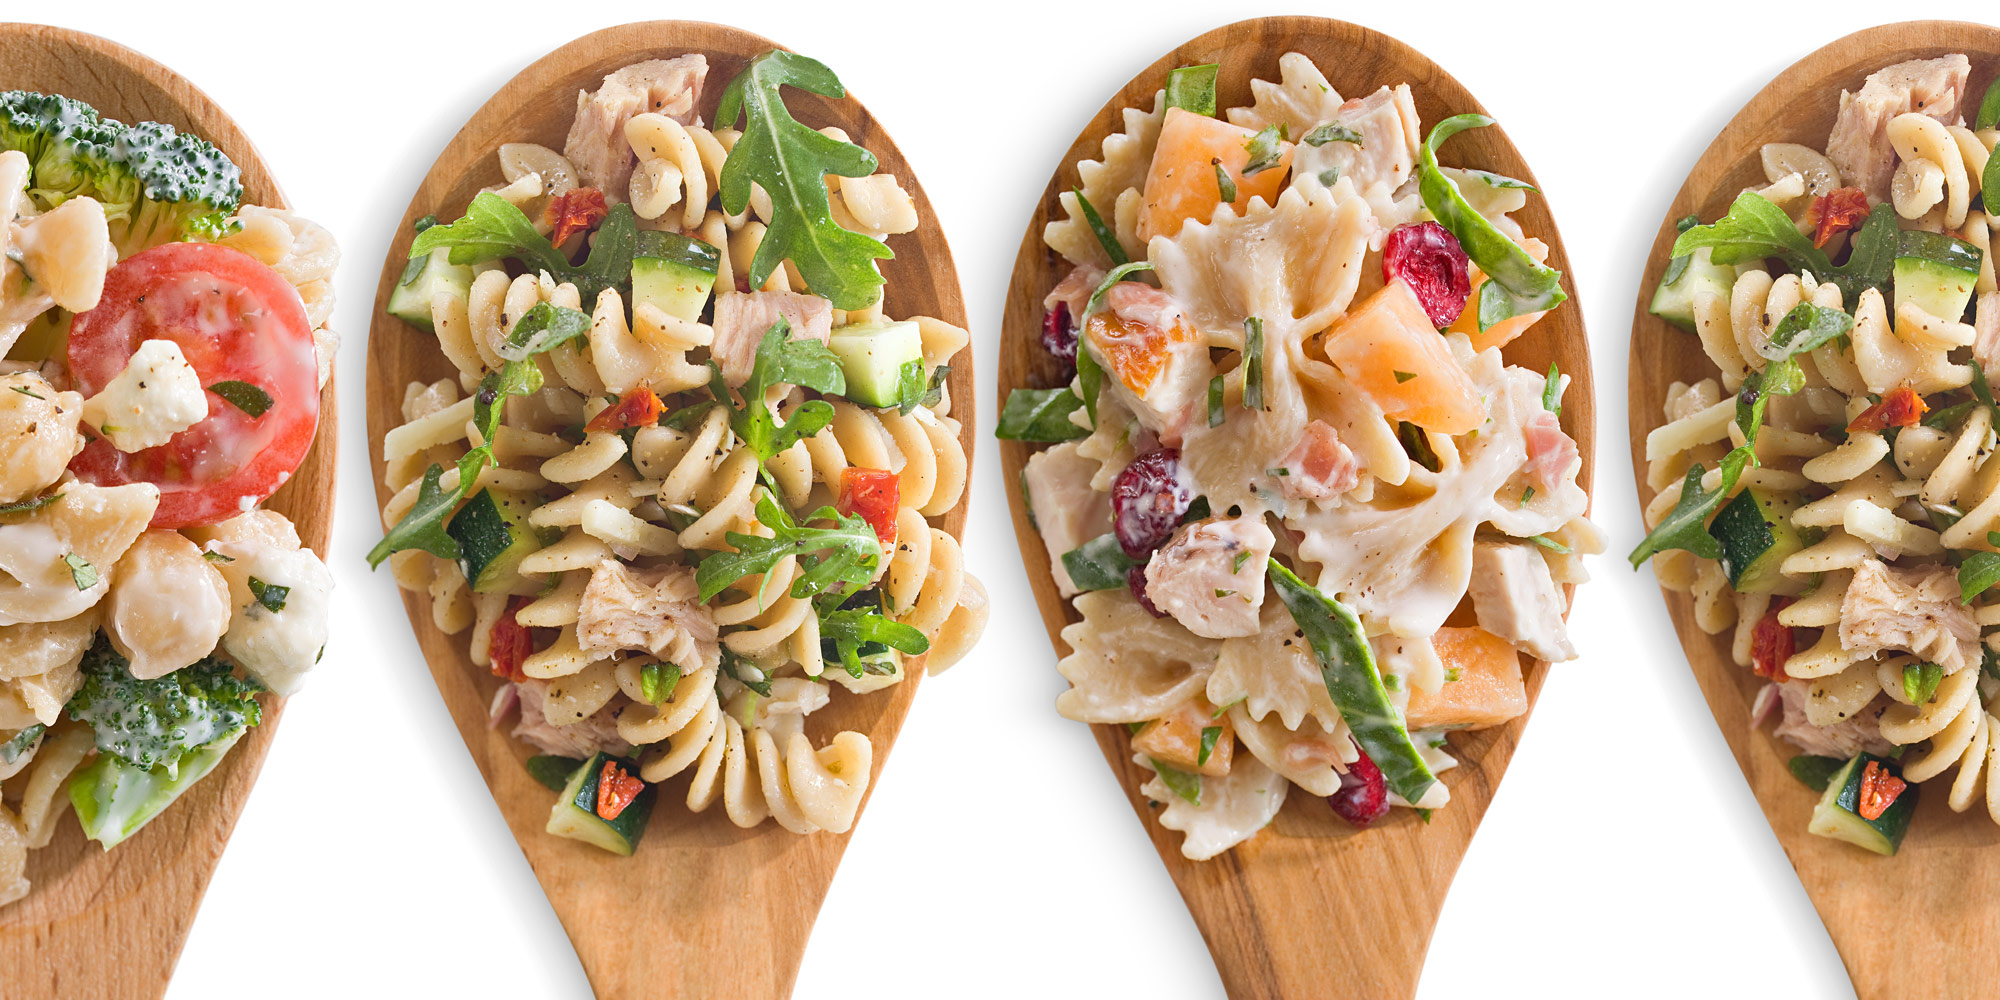 pasta salad combos on a spoon